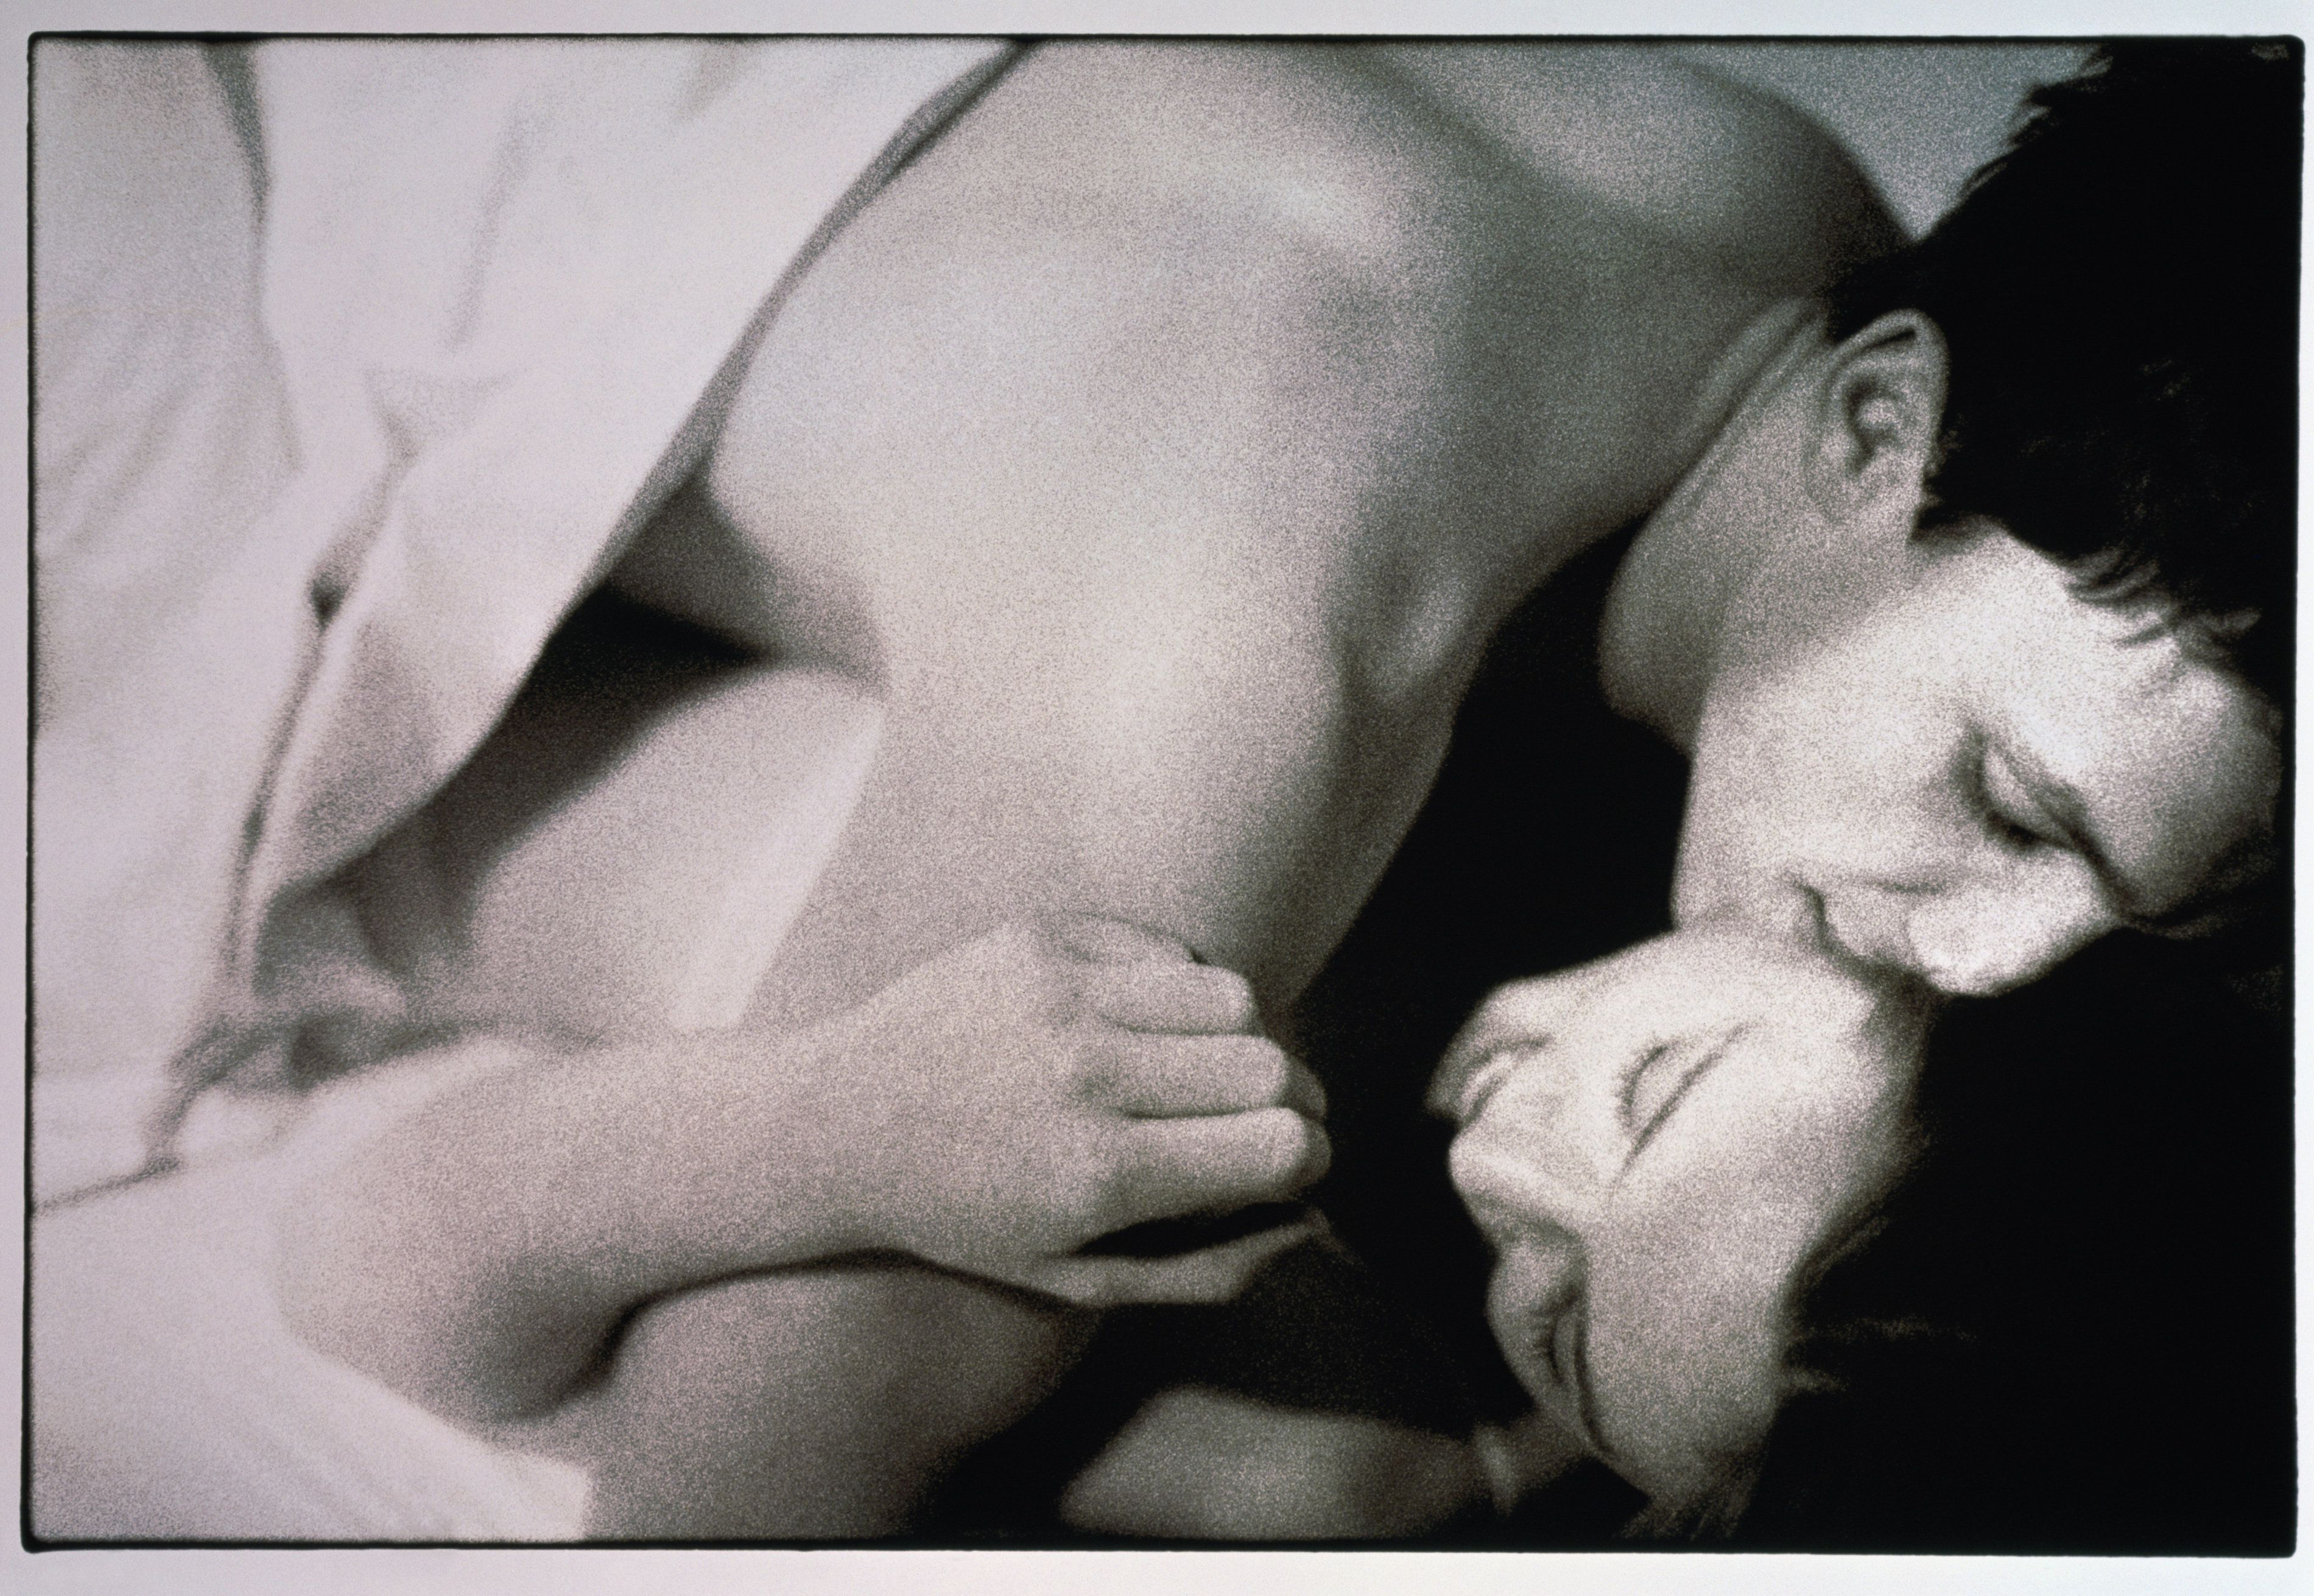 Couple embracing in bed (toned B&W)